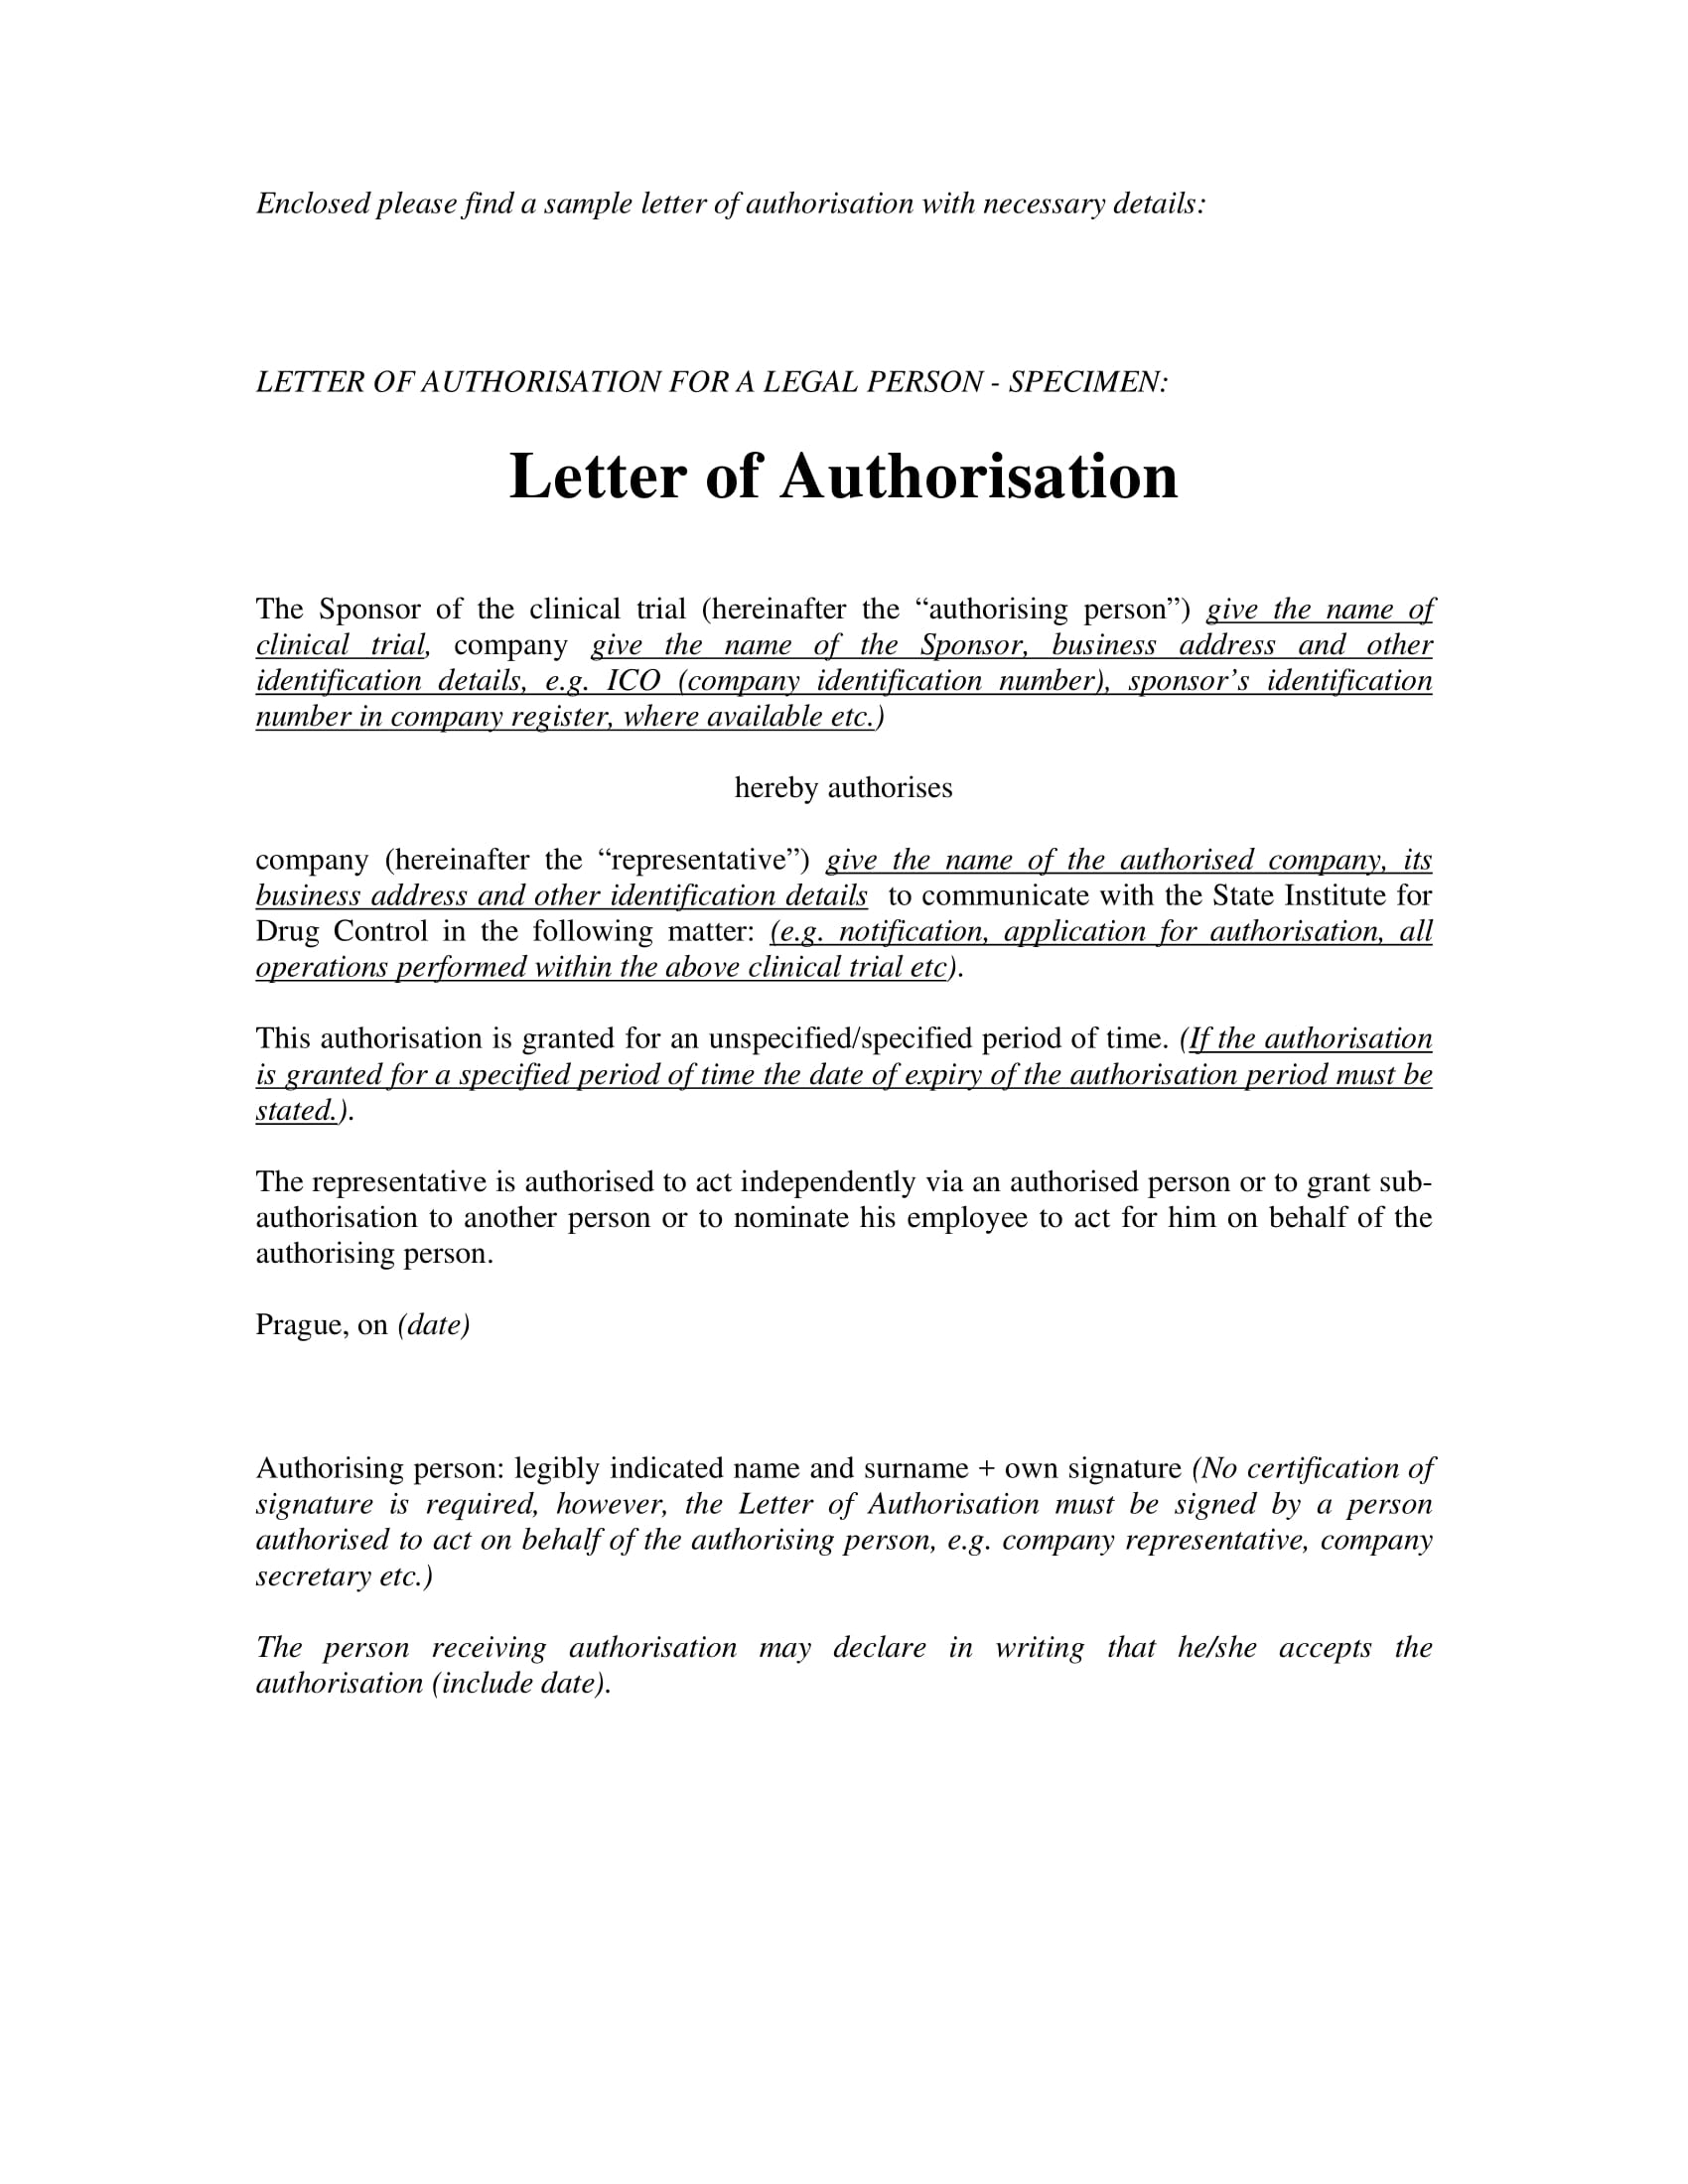 letter of authorization for a legal person example 1